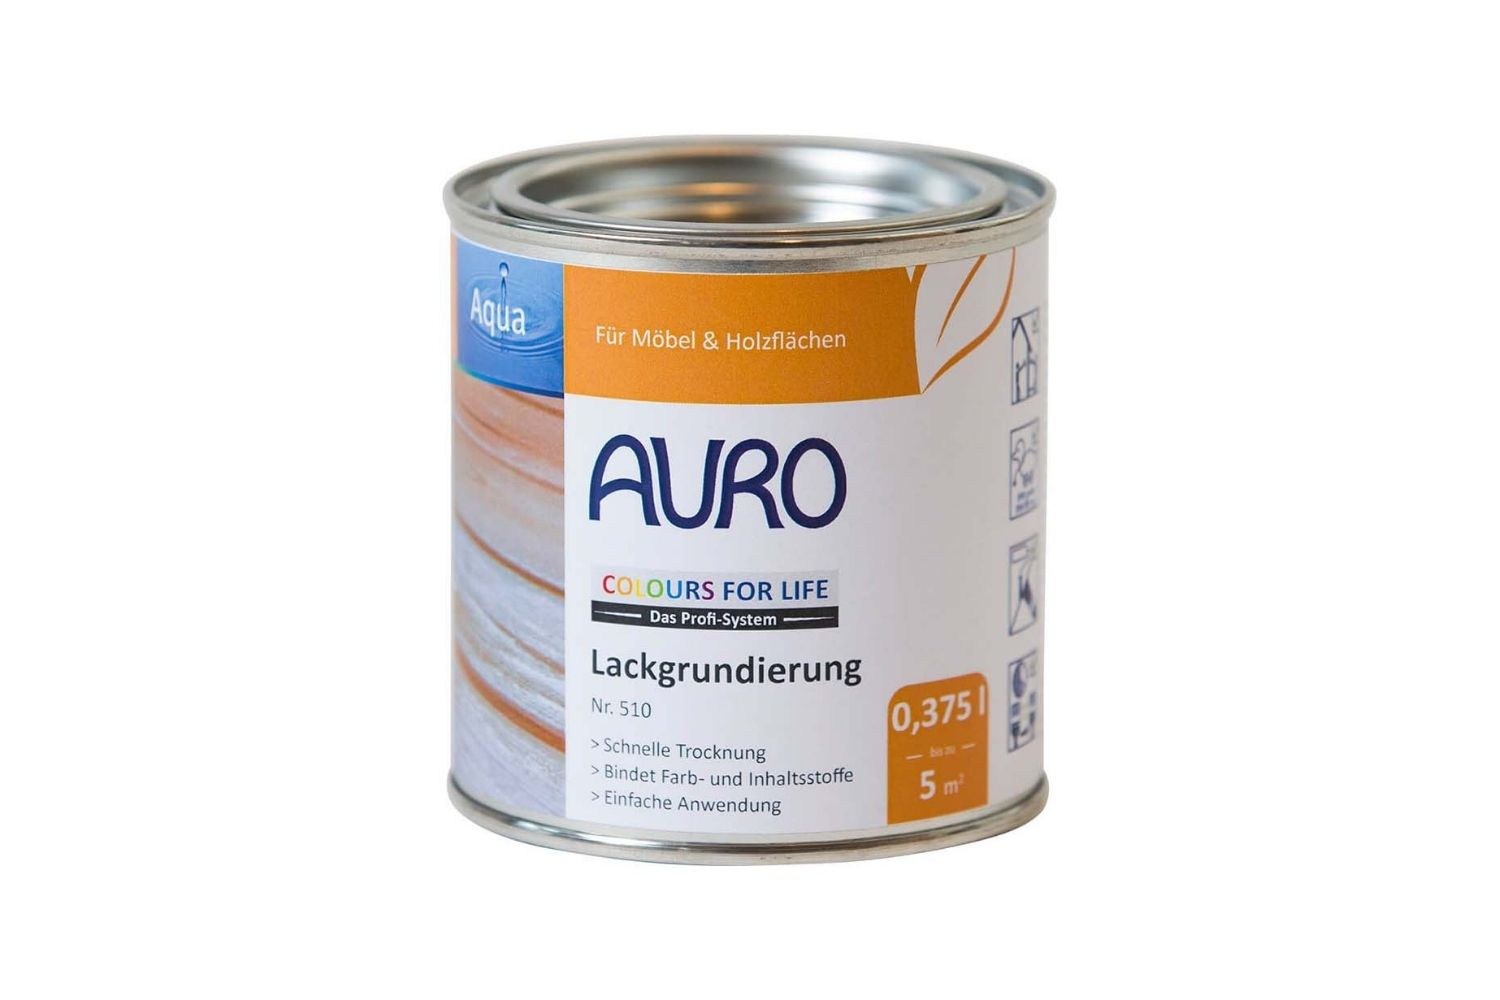 Auro Lackgrundierung Nr. 510